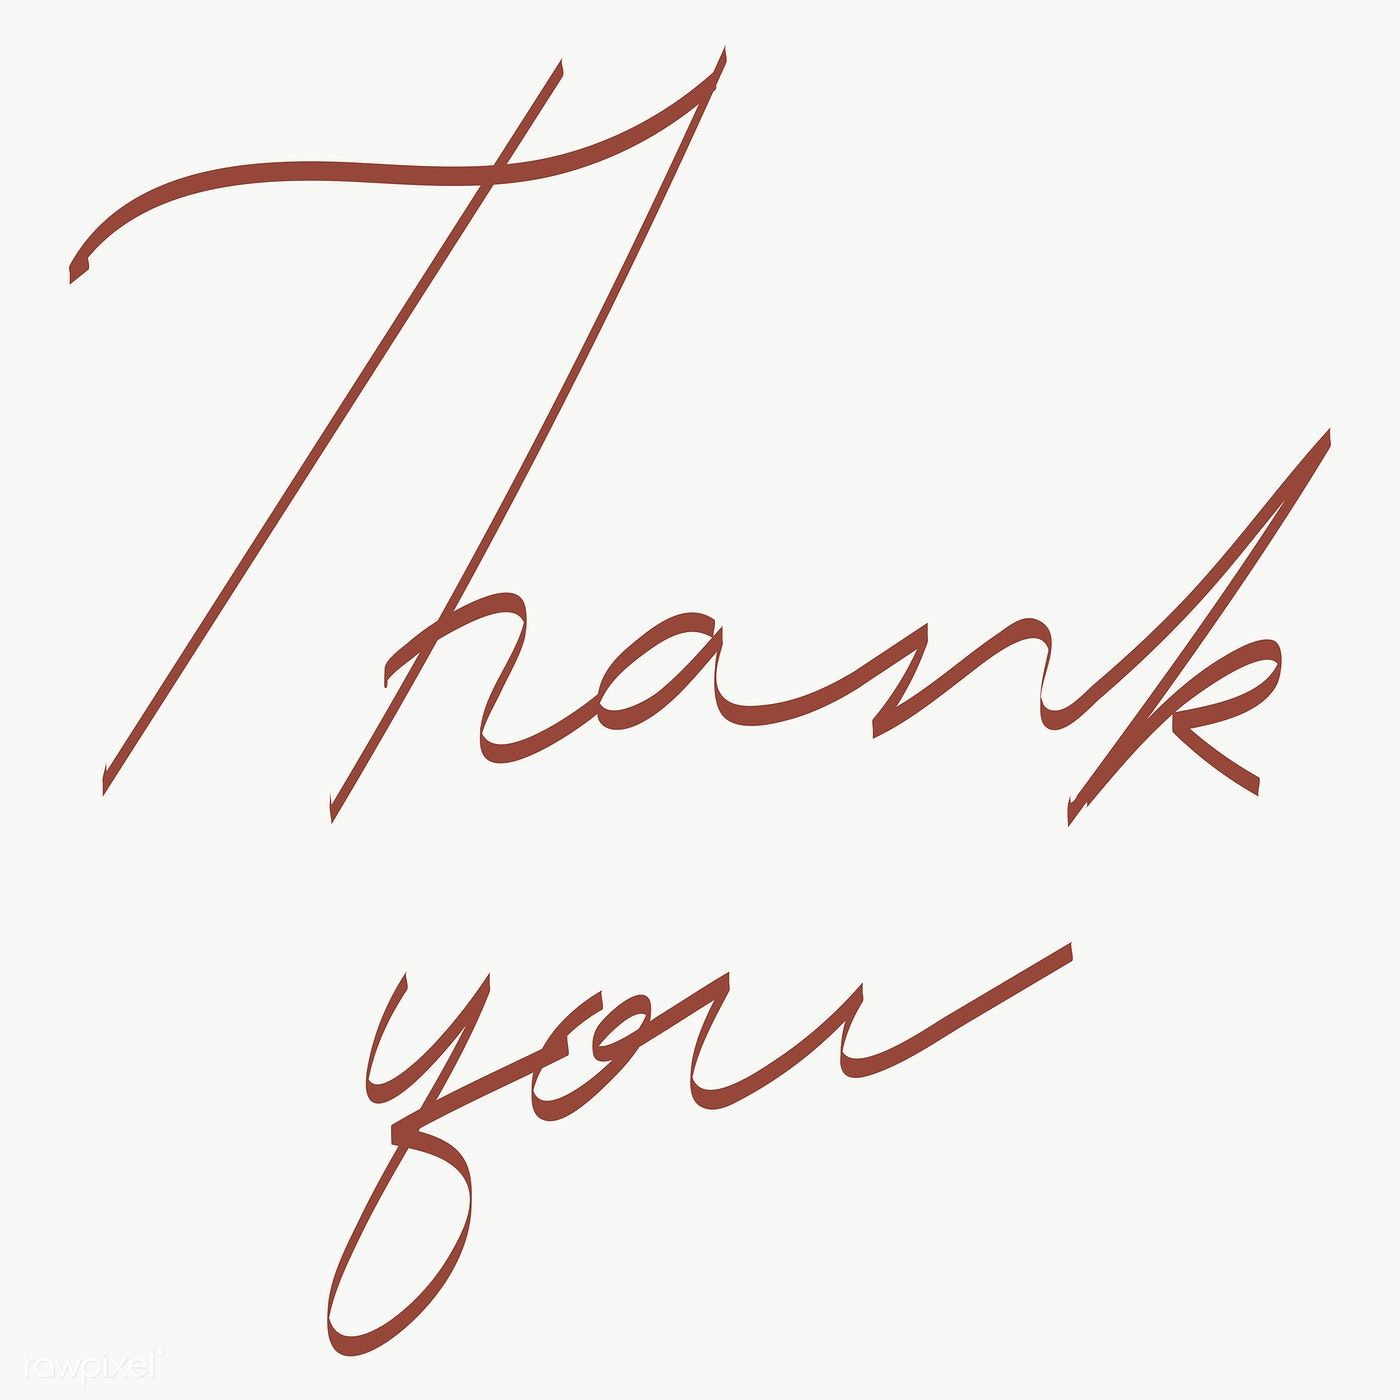 Thank You Handwriting Transparent Png Free Image By Rawpixel Com Aew Thank You Font Thank You Card Design Typography Card